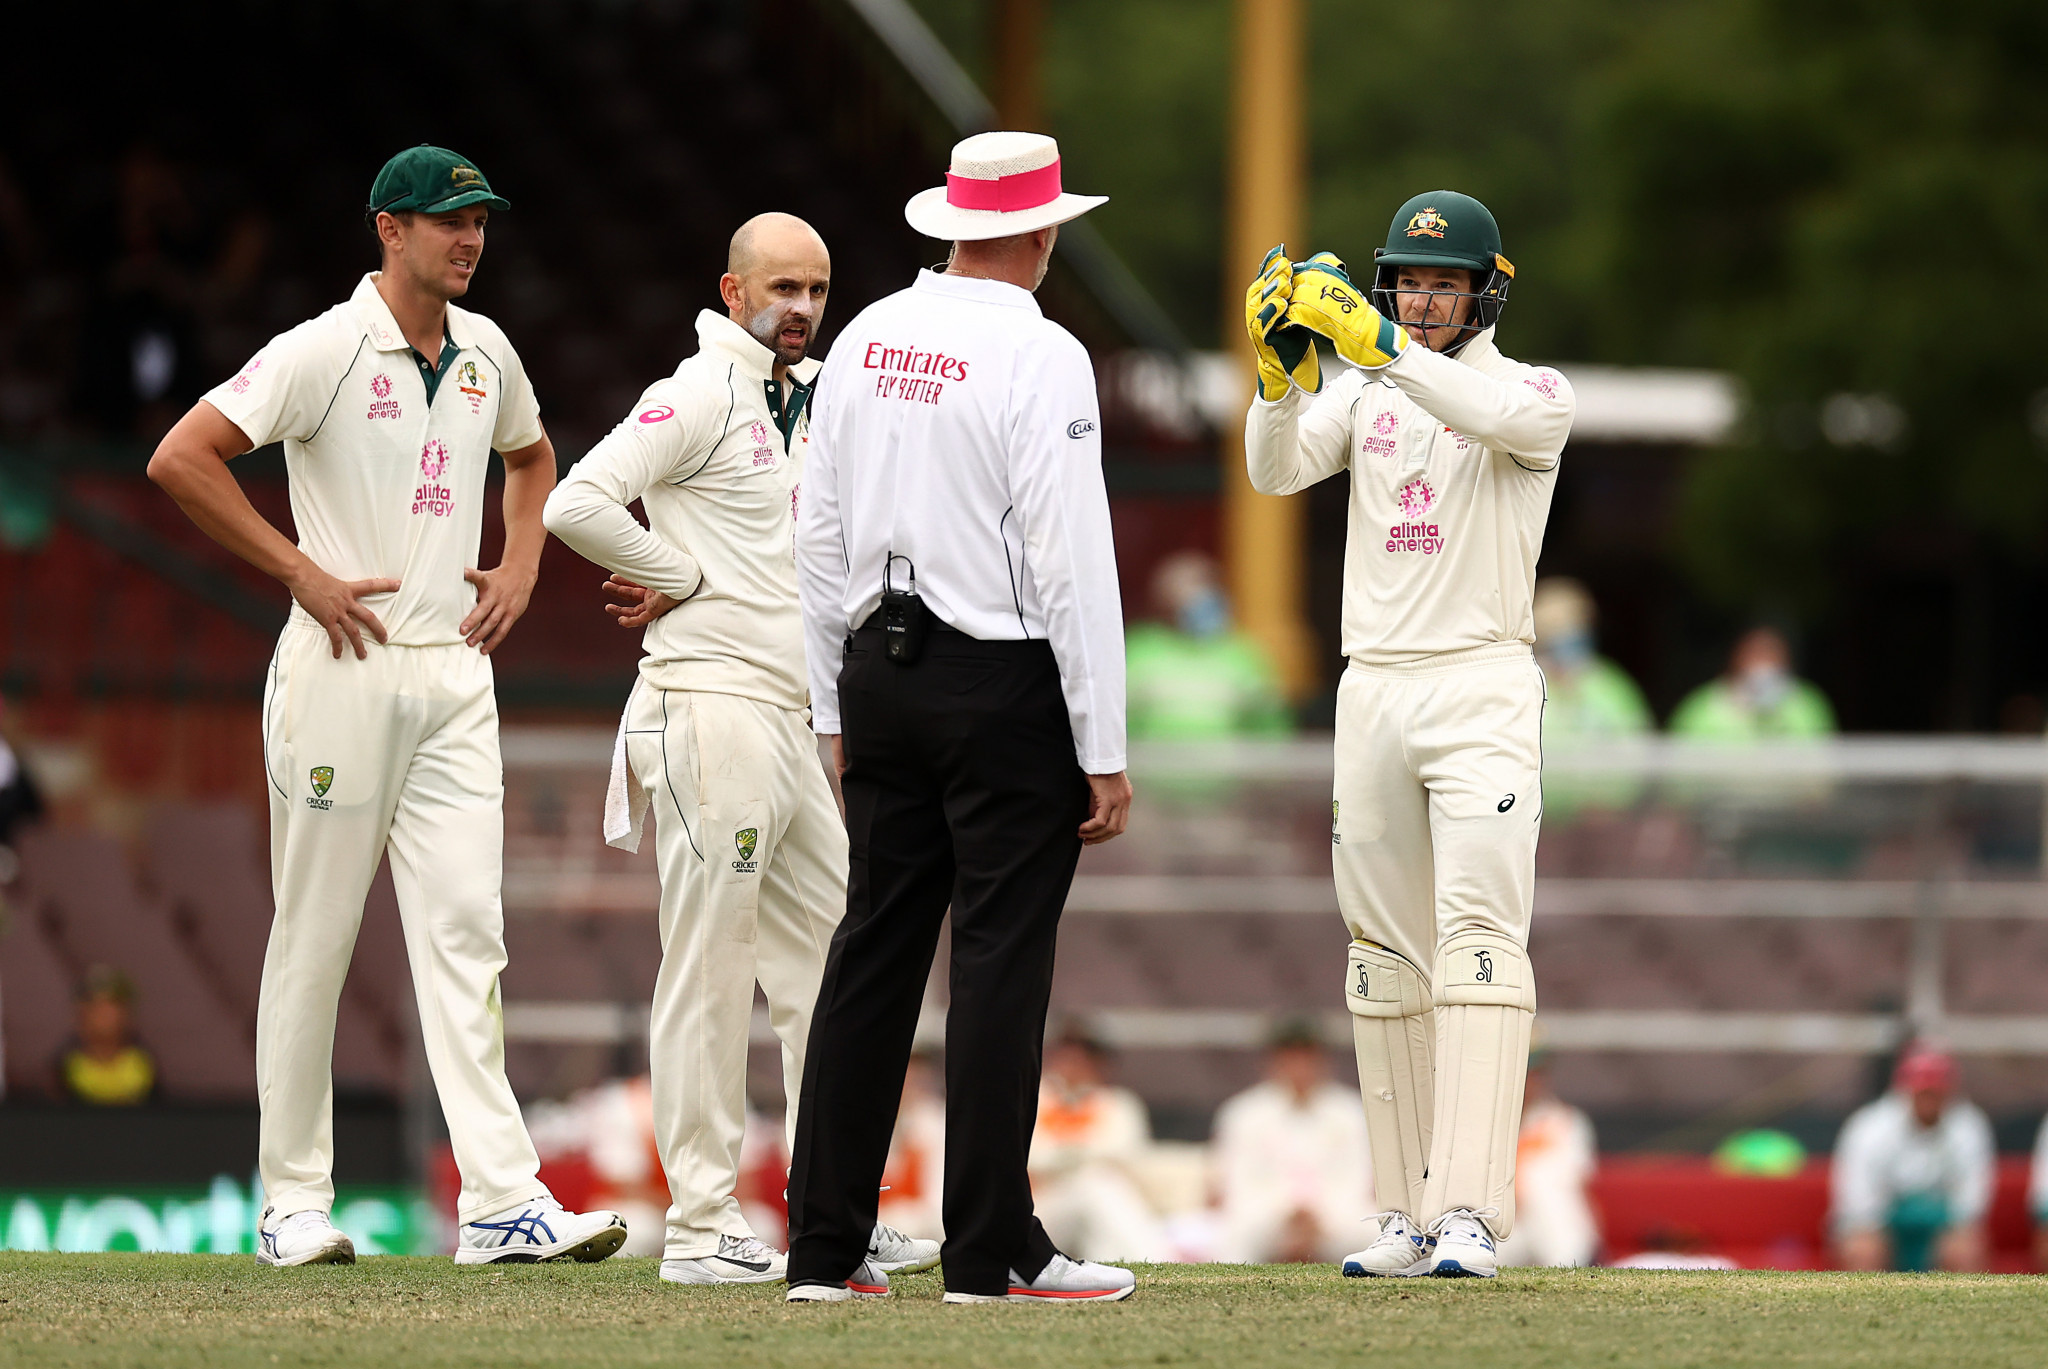 ICC maintains Umpire's Call with tweaks made to decision review system